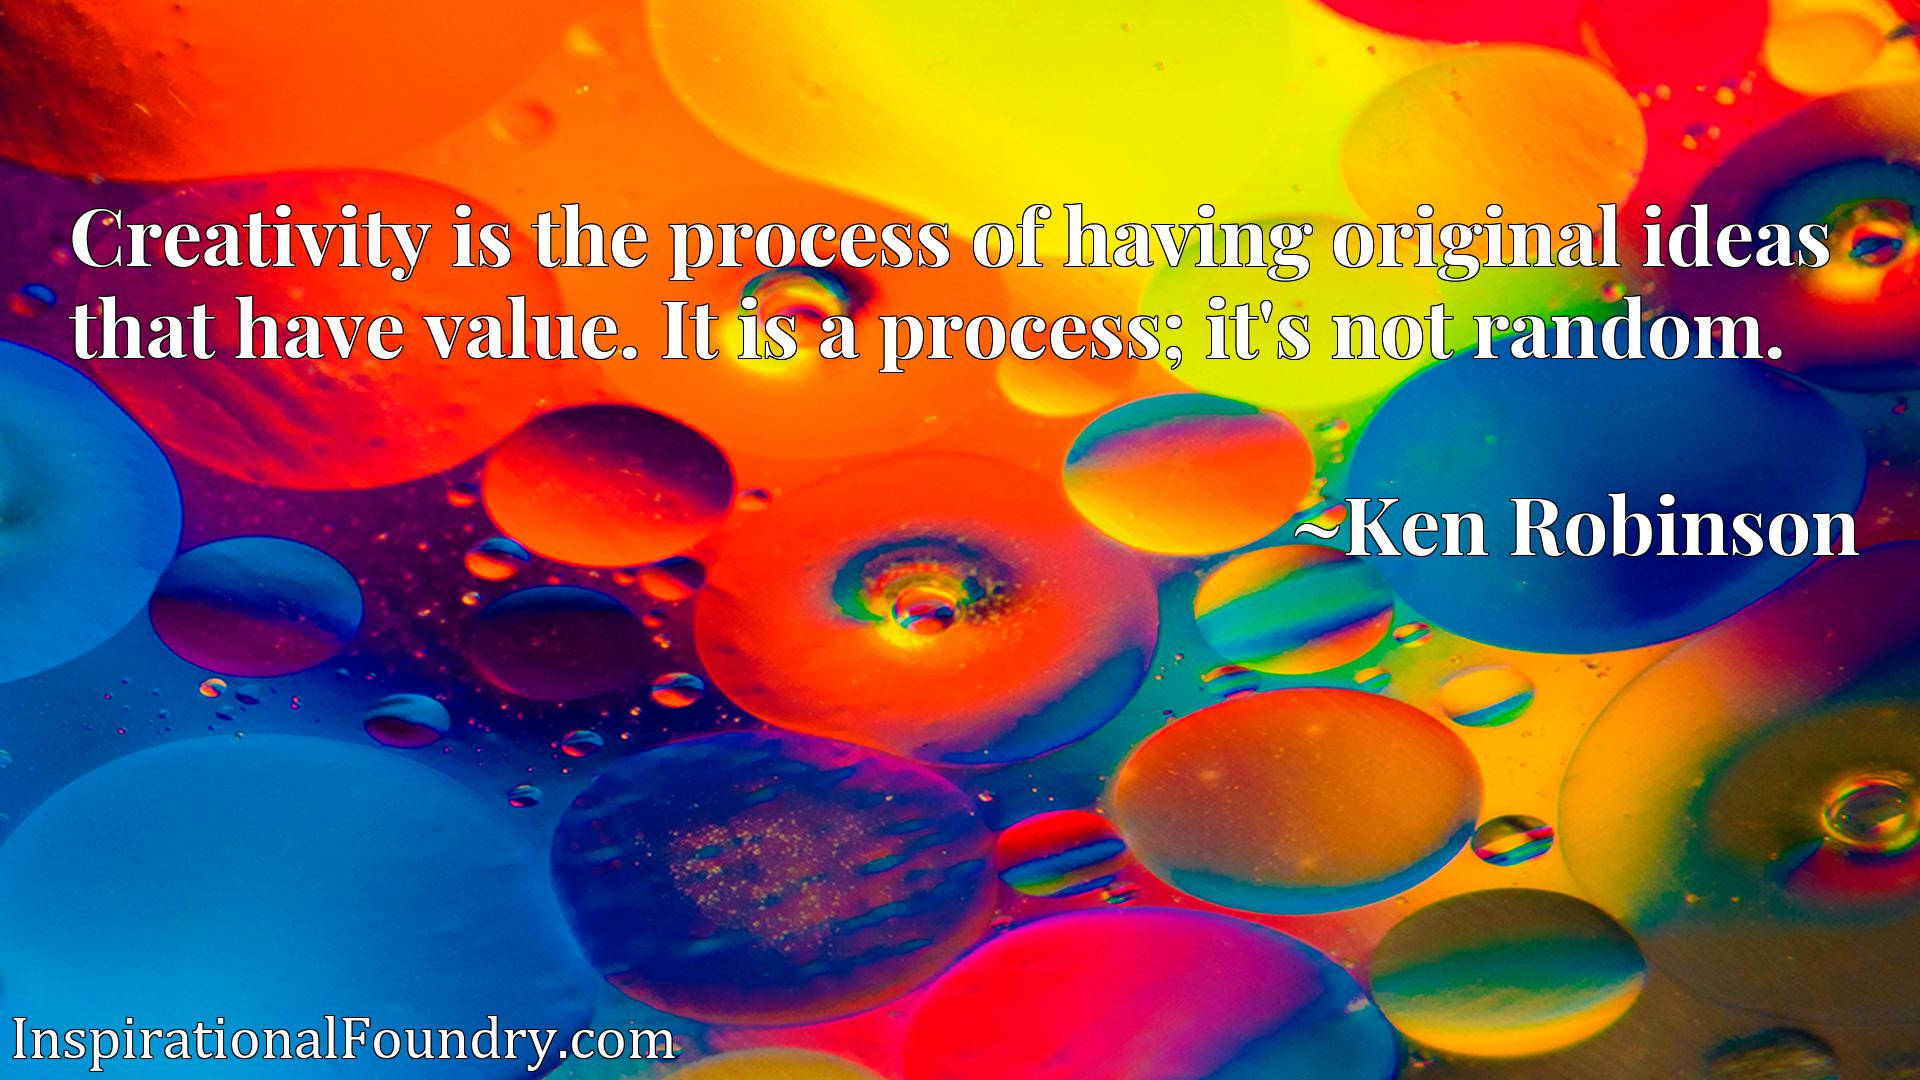 Creativity is the process of having original ideas that have value. It is a process; it's not random.